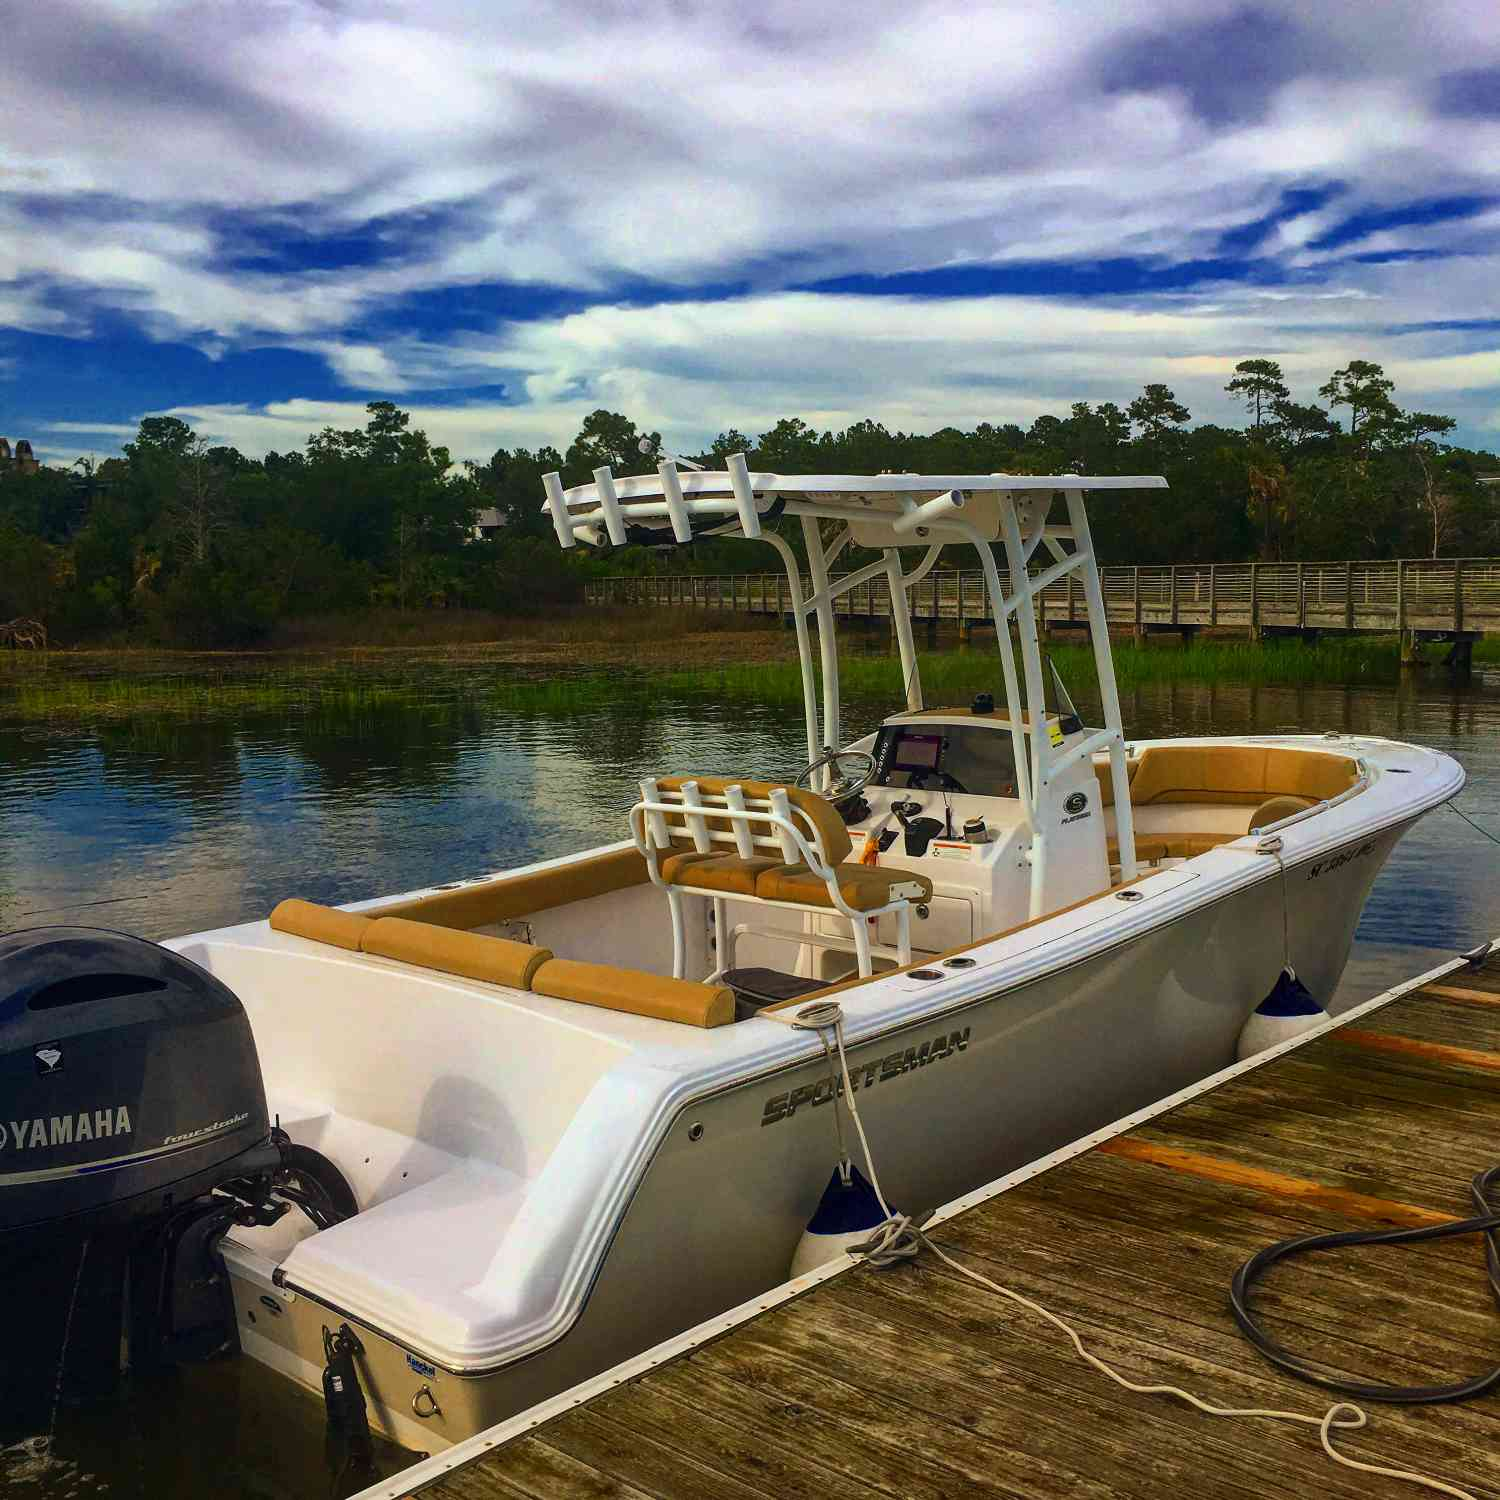 Title: Evening Cruise - On board their Sportsman Heritage 231 Center Console - Location: Charleston, South Carolina. Participating in the Photo Contest #SportsmanAugust2018